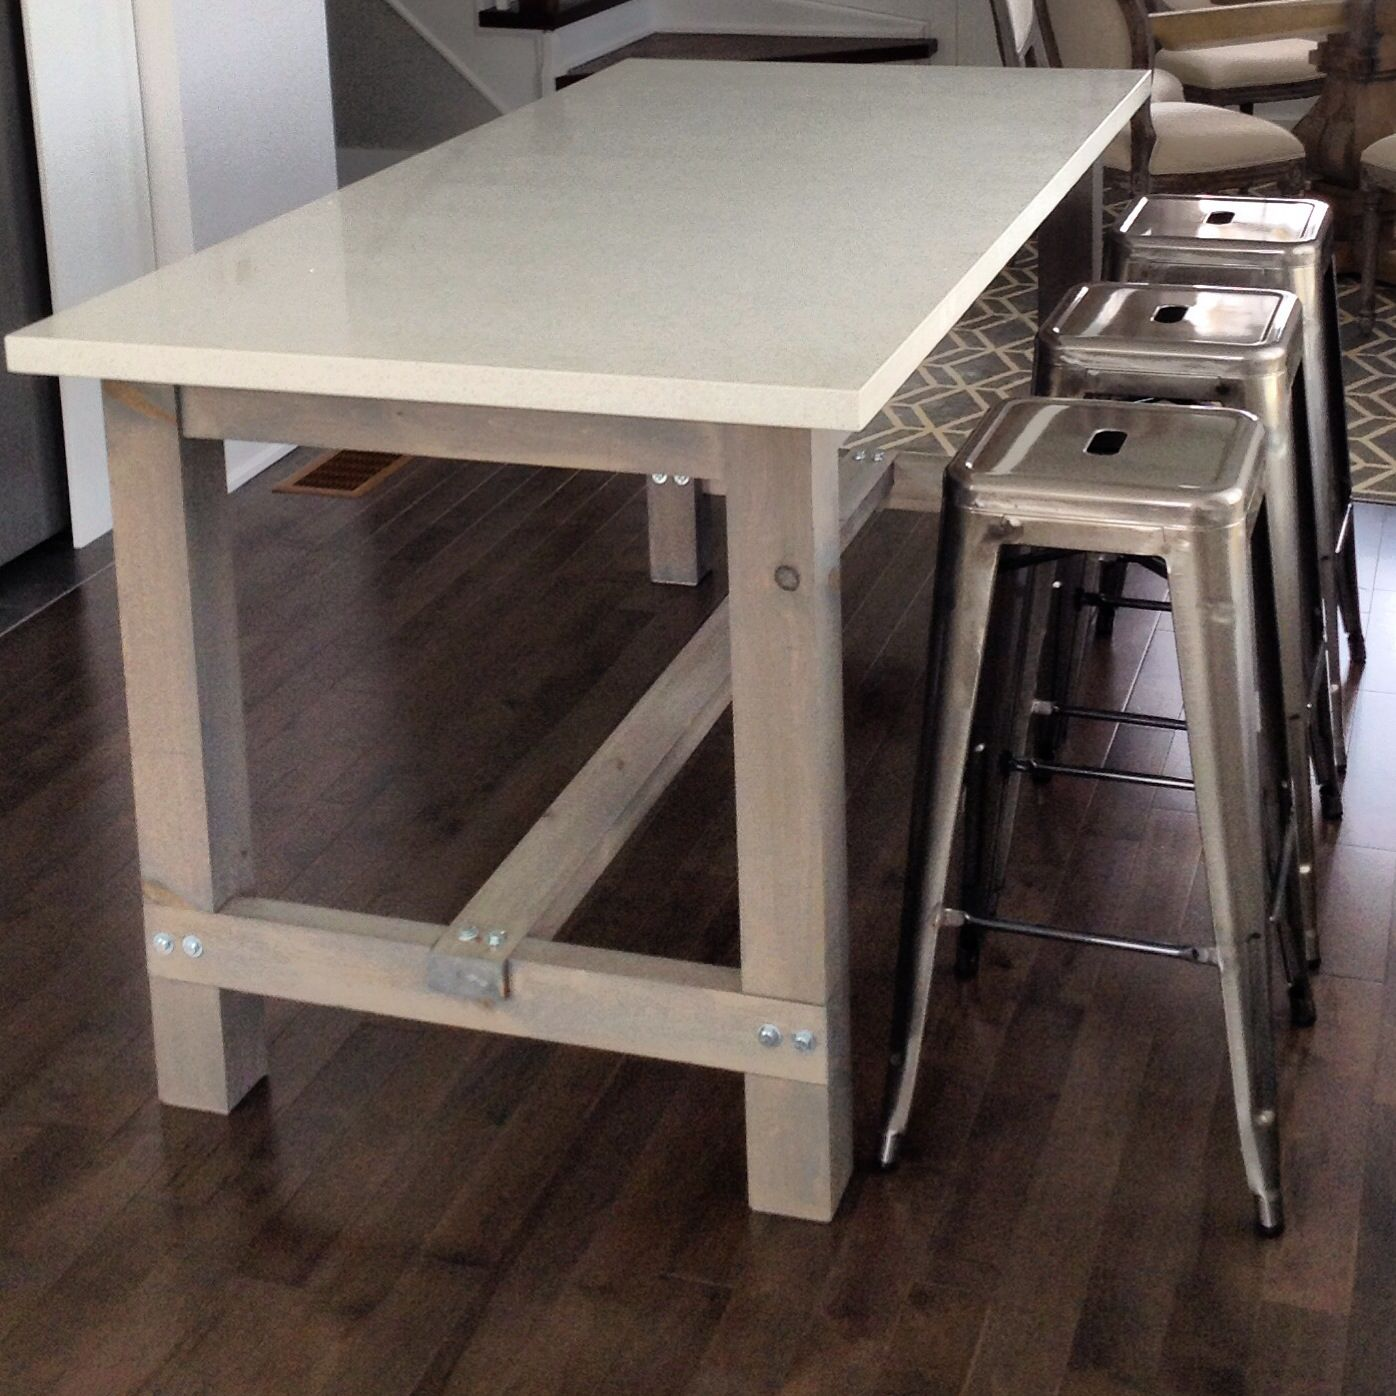 diy harvest table kitchen island with white quartz counter. Black Bedroom Furniture Sets. Home Design Ideas